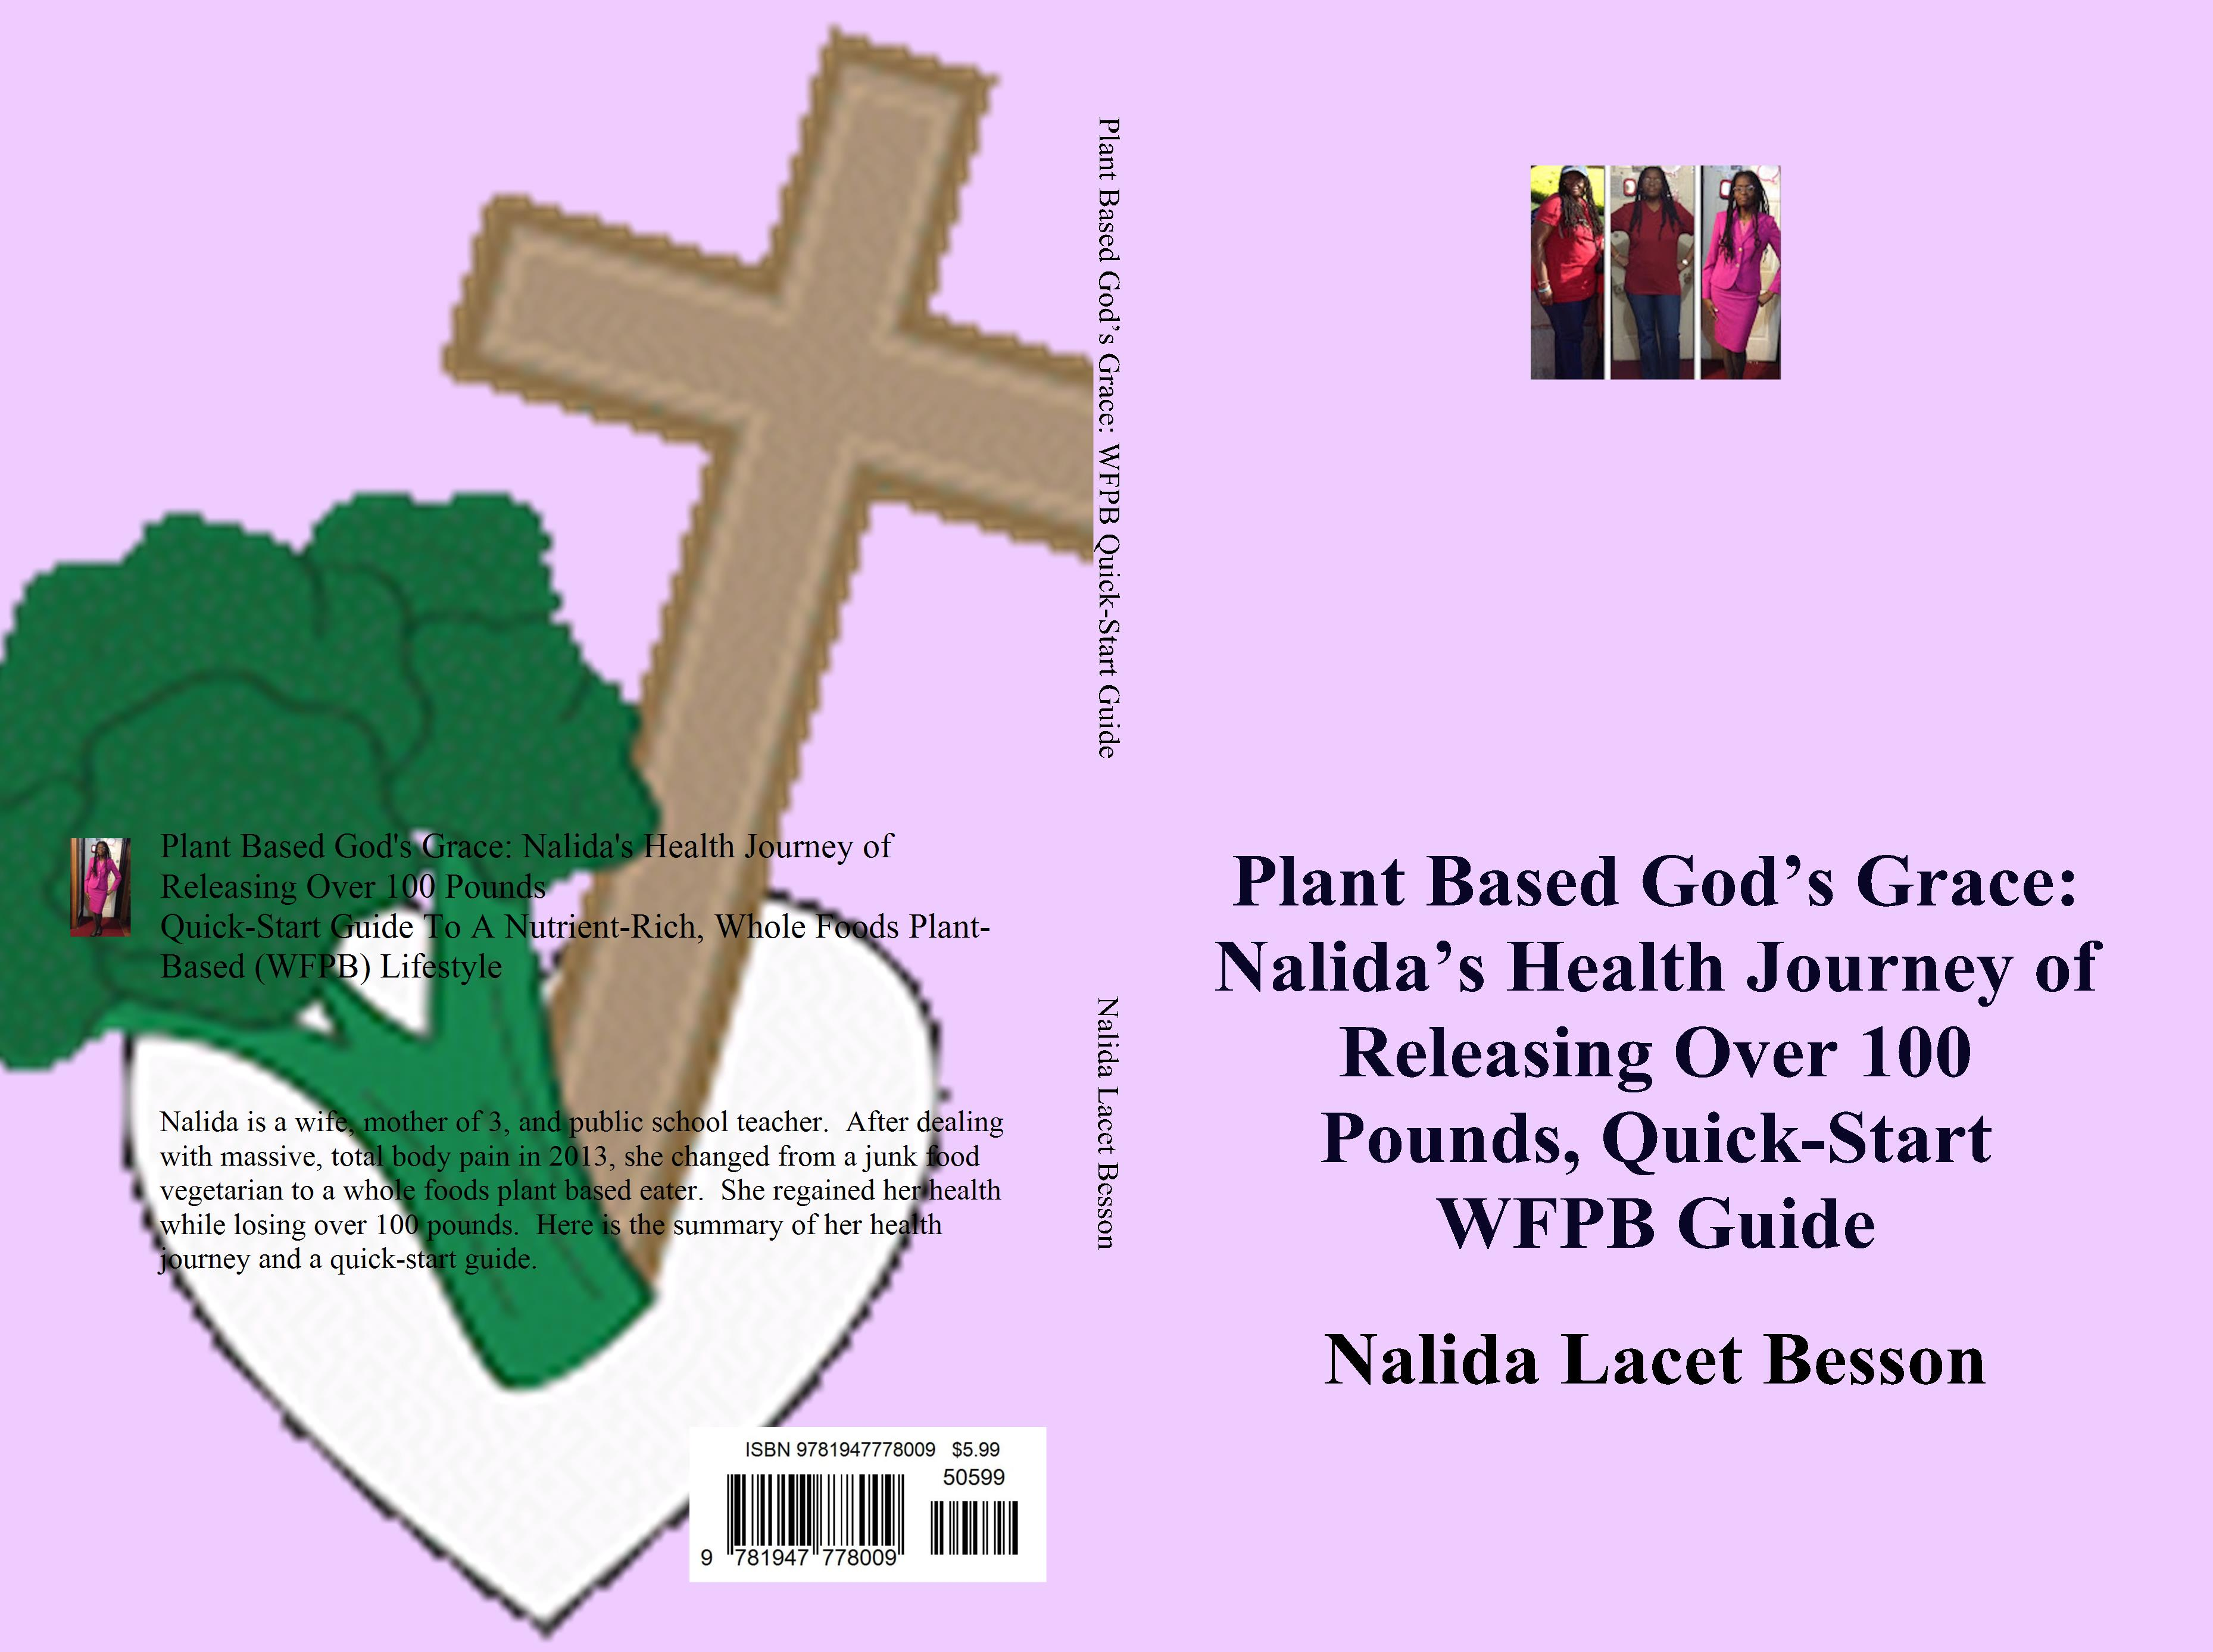 Plant Based God's Grace: Nalida's Health Journey of Releasing Over 100 Pounds, Quick-Start WFPB Guide cover image